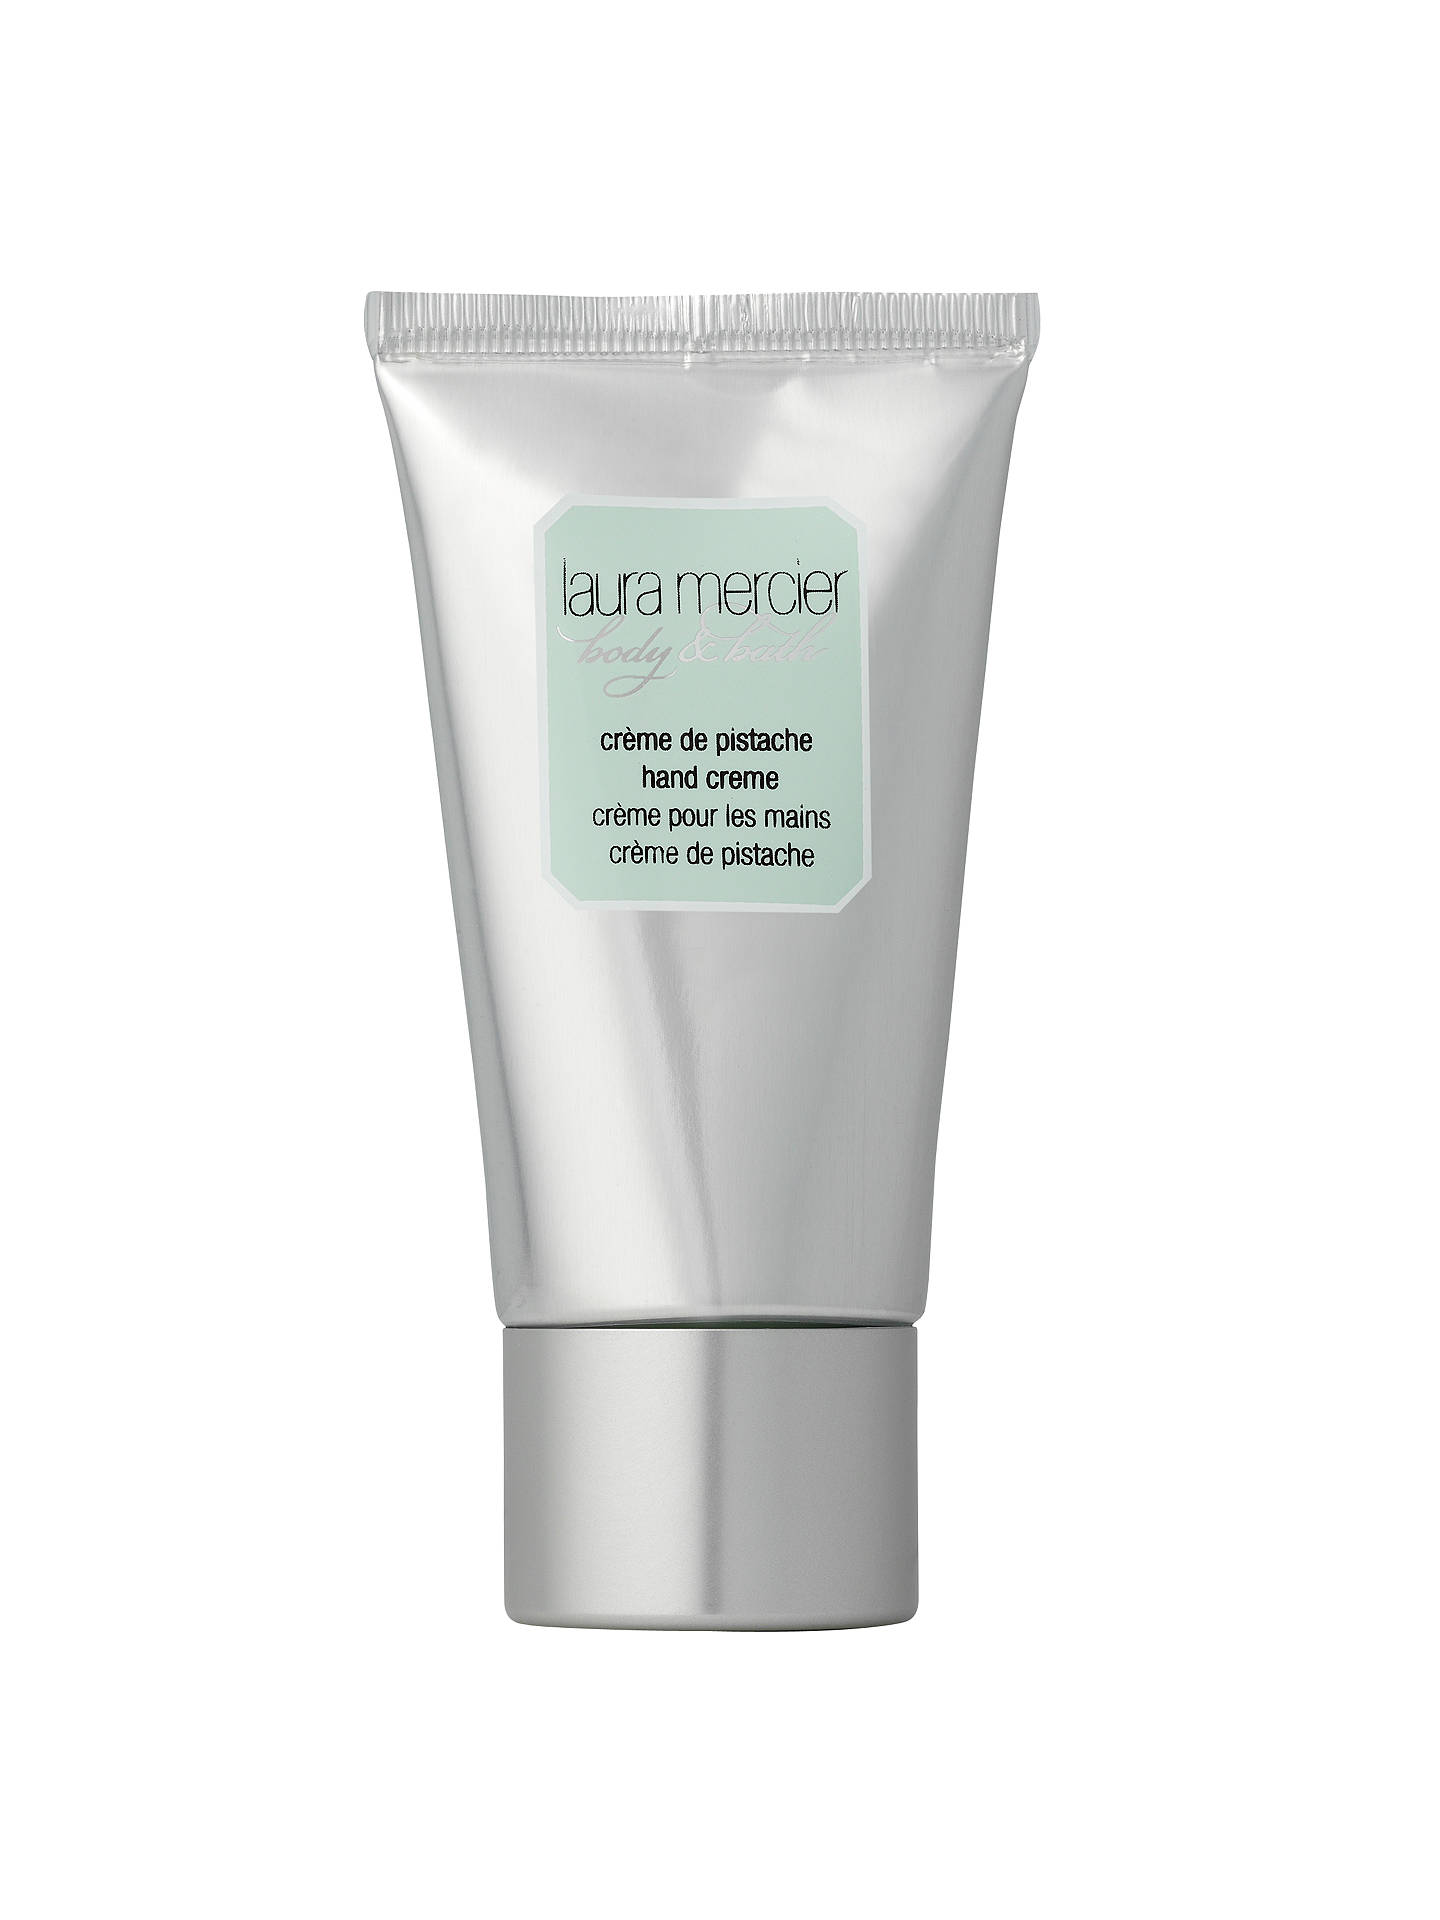 Buy Laura Mercier de Pistache Hand Crème, 50g Online at johnlewis.com